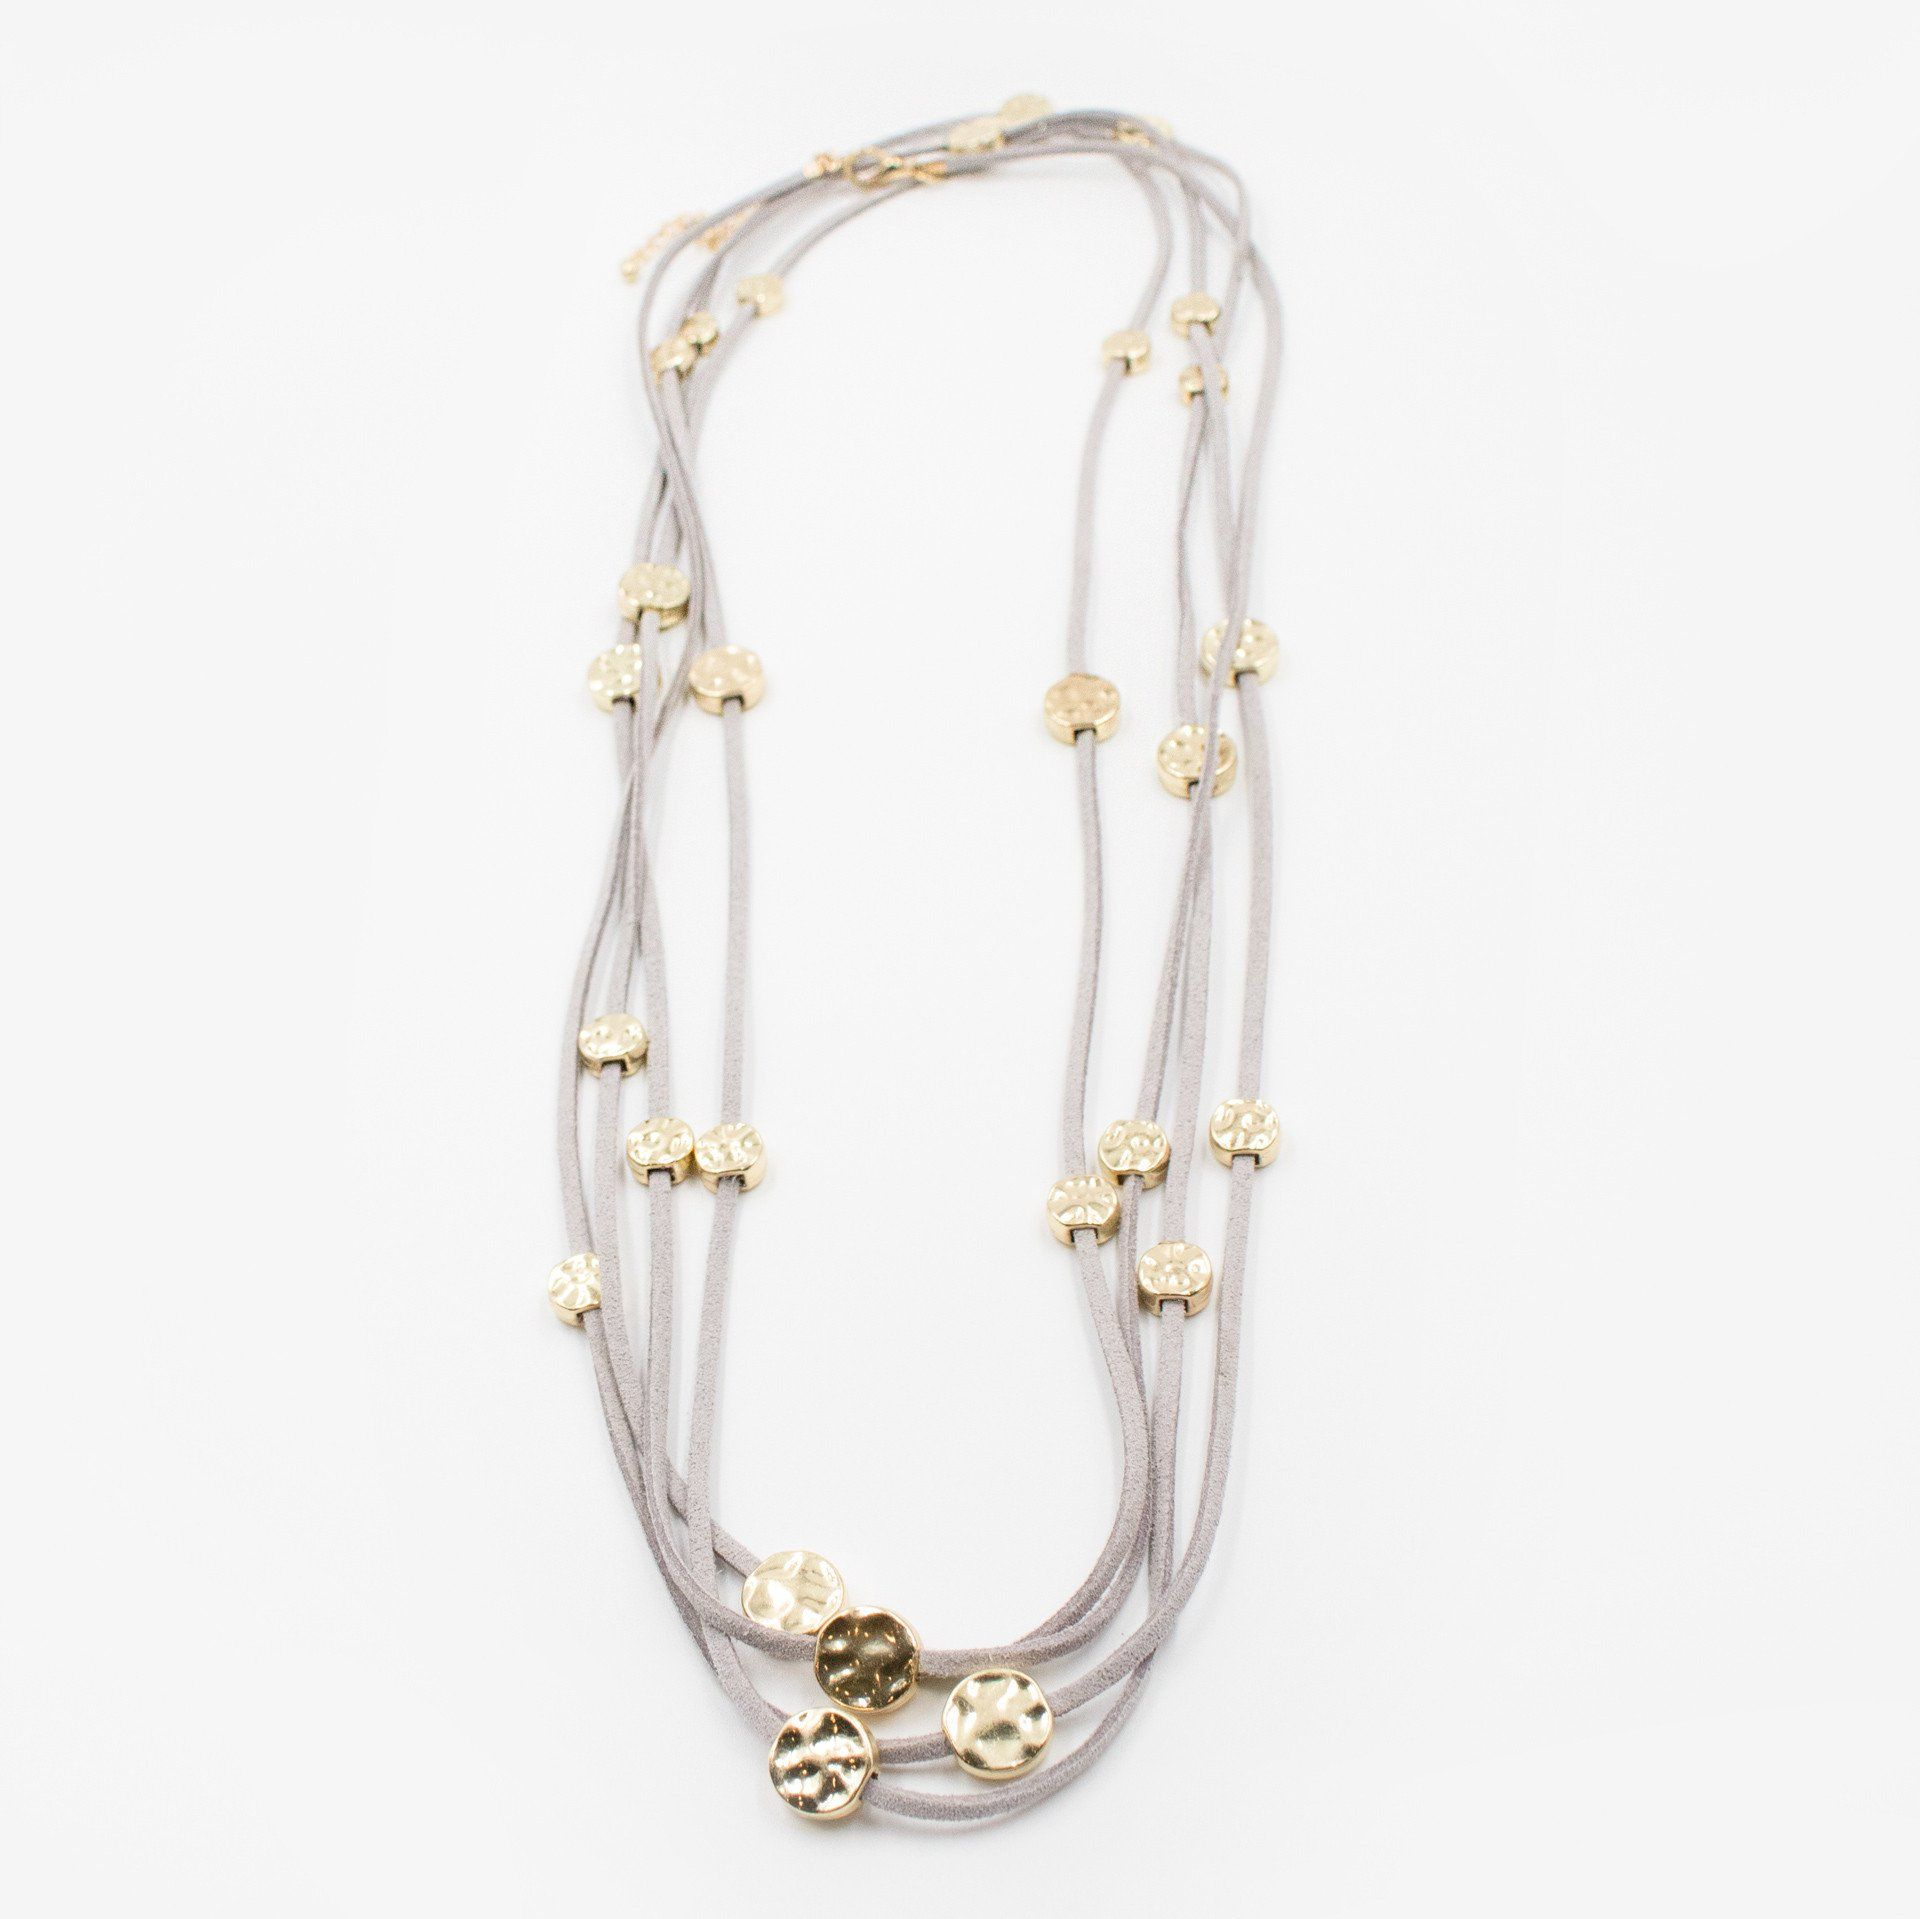 'Suede of Gold' Layered Necklace (2 Variations) - Arlo and Arrows